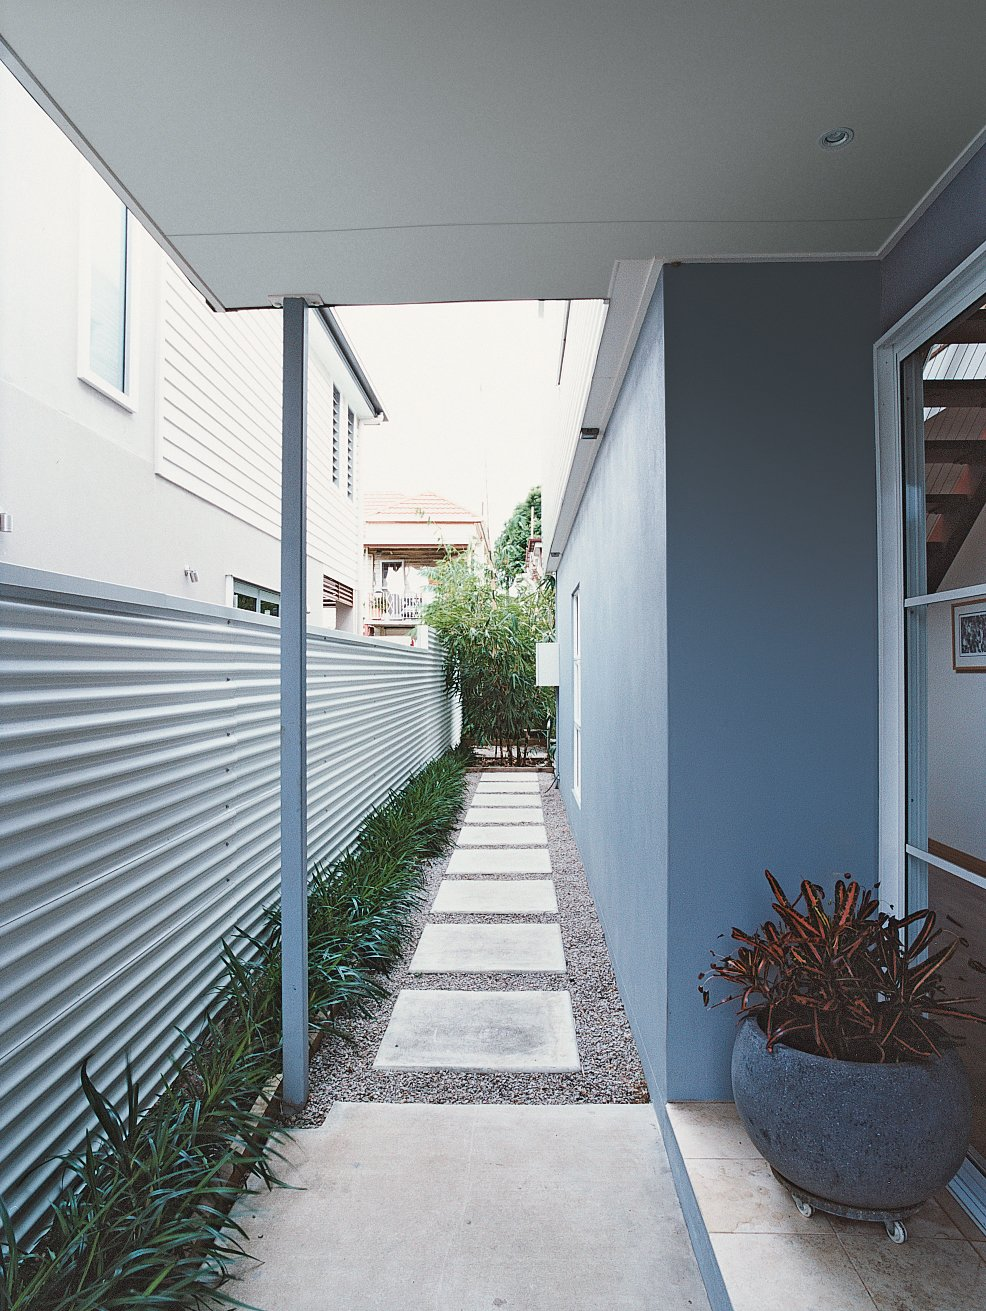 Clayden made the most of his modest lot by building as close to the perimeter as local zoning codes allow. Tagged: Side Yard, Hardscapes, Metal Fences, Wall, Horizontal Fences, Wall, and Outdoor.  Photo 3 of 8 in Minimalist Bachelor Pad in Brisbane